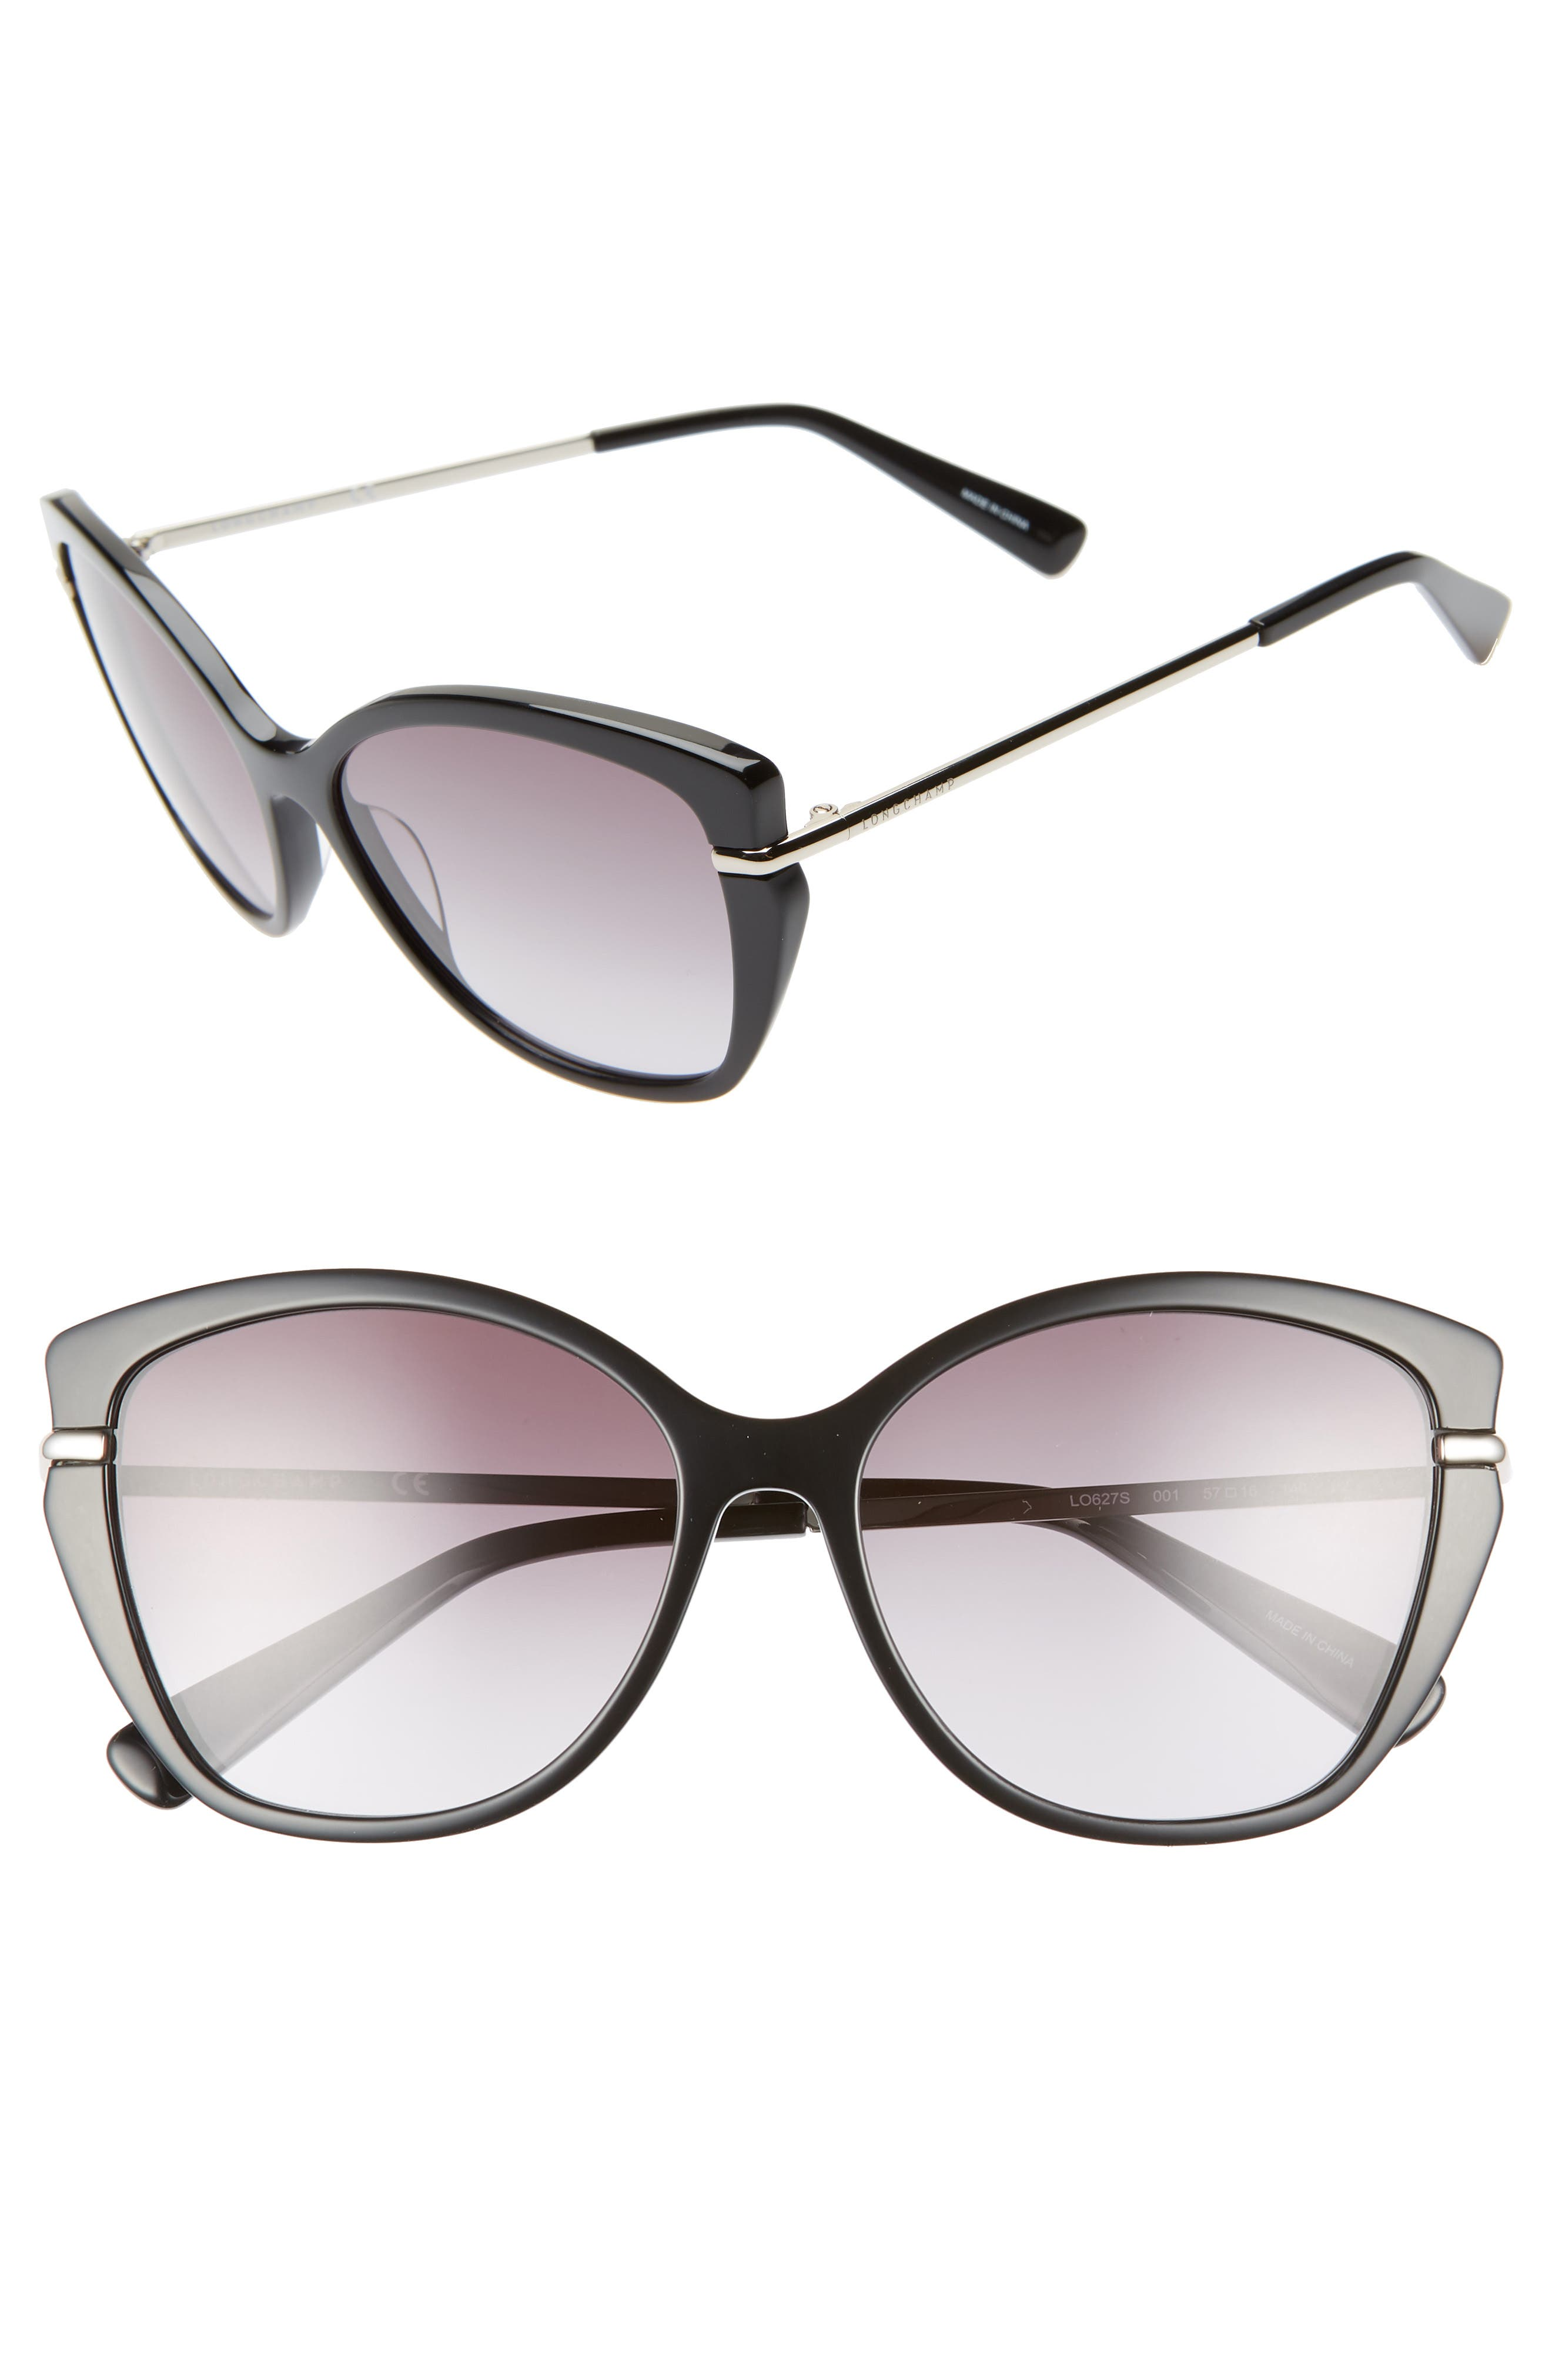 Heritage 57Mm Butterfly Sunglasses - Black